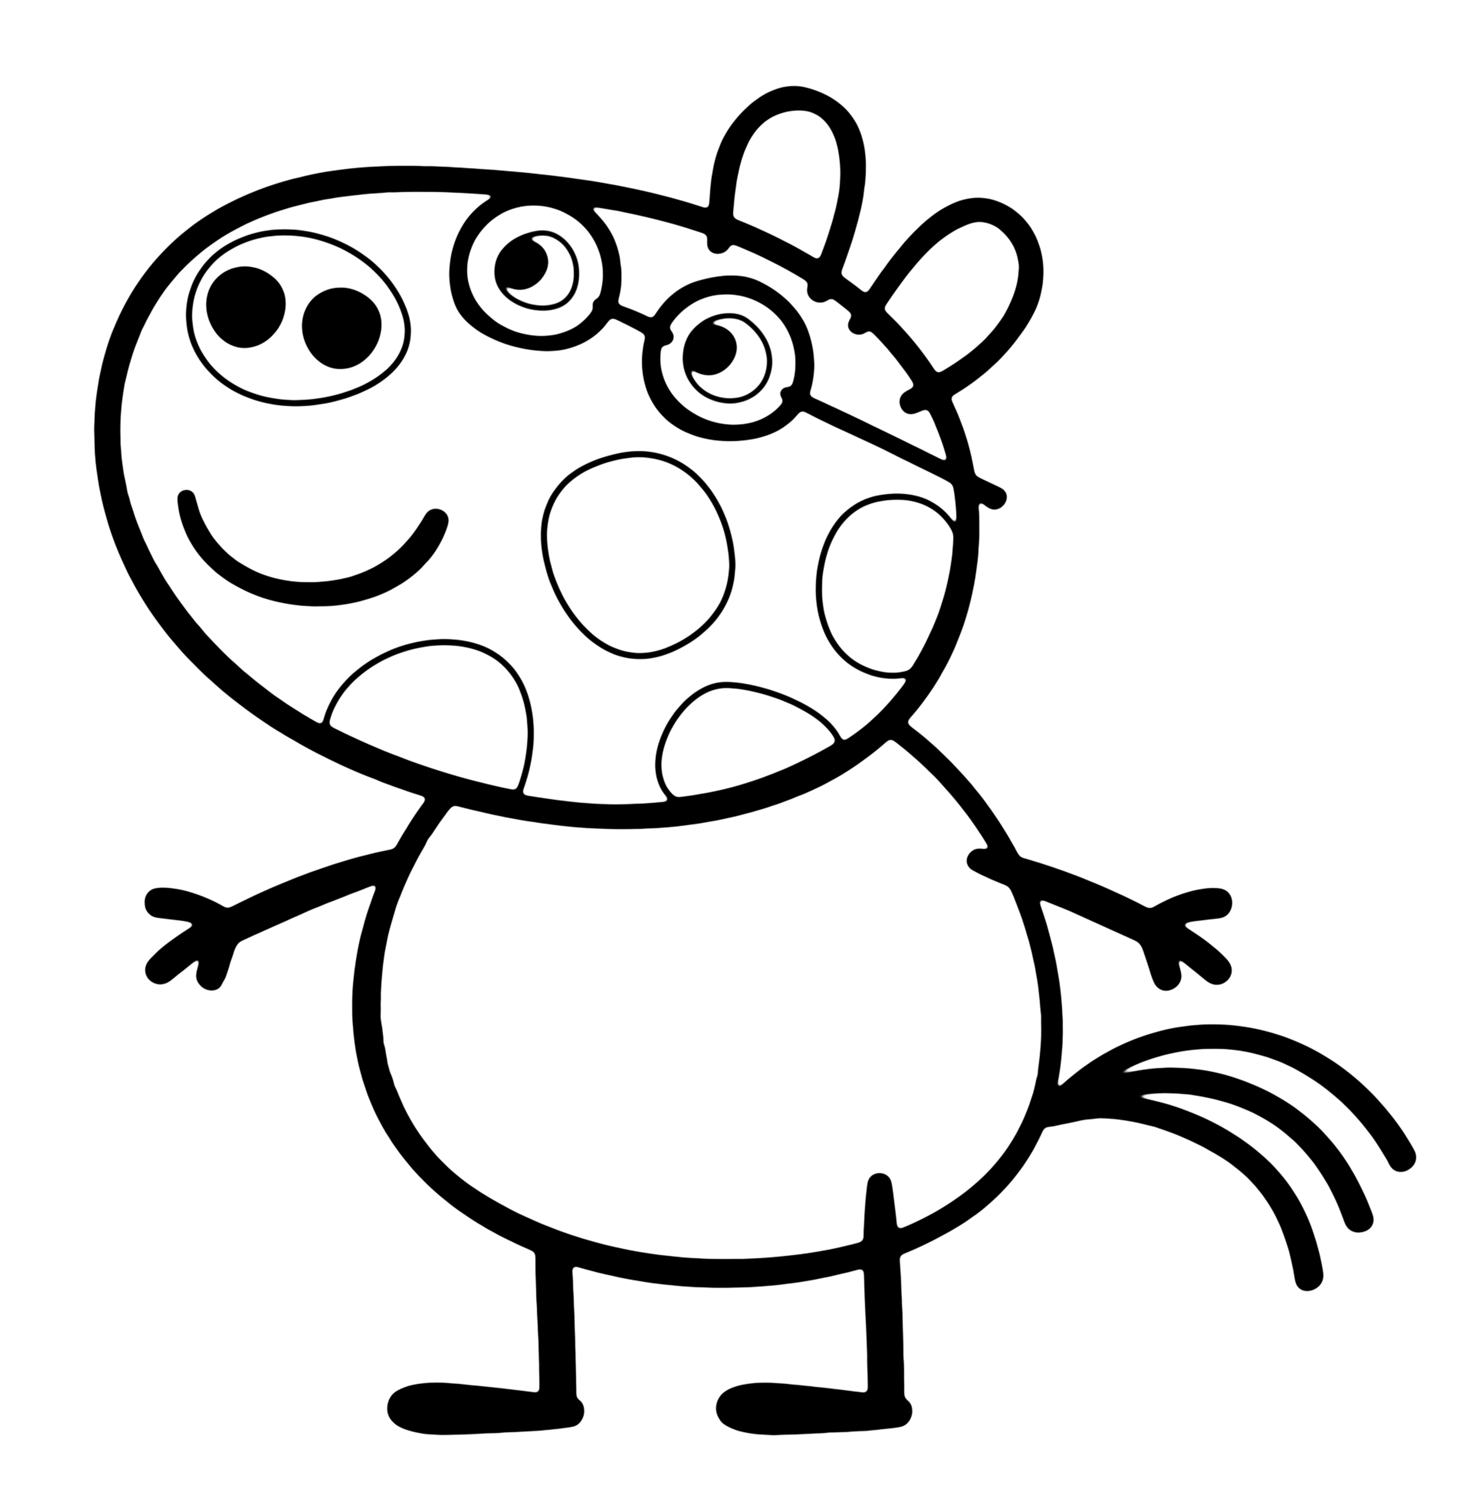 peppa pig color cartoon coloring pages momjunction color peppa pig